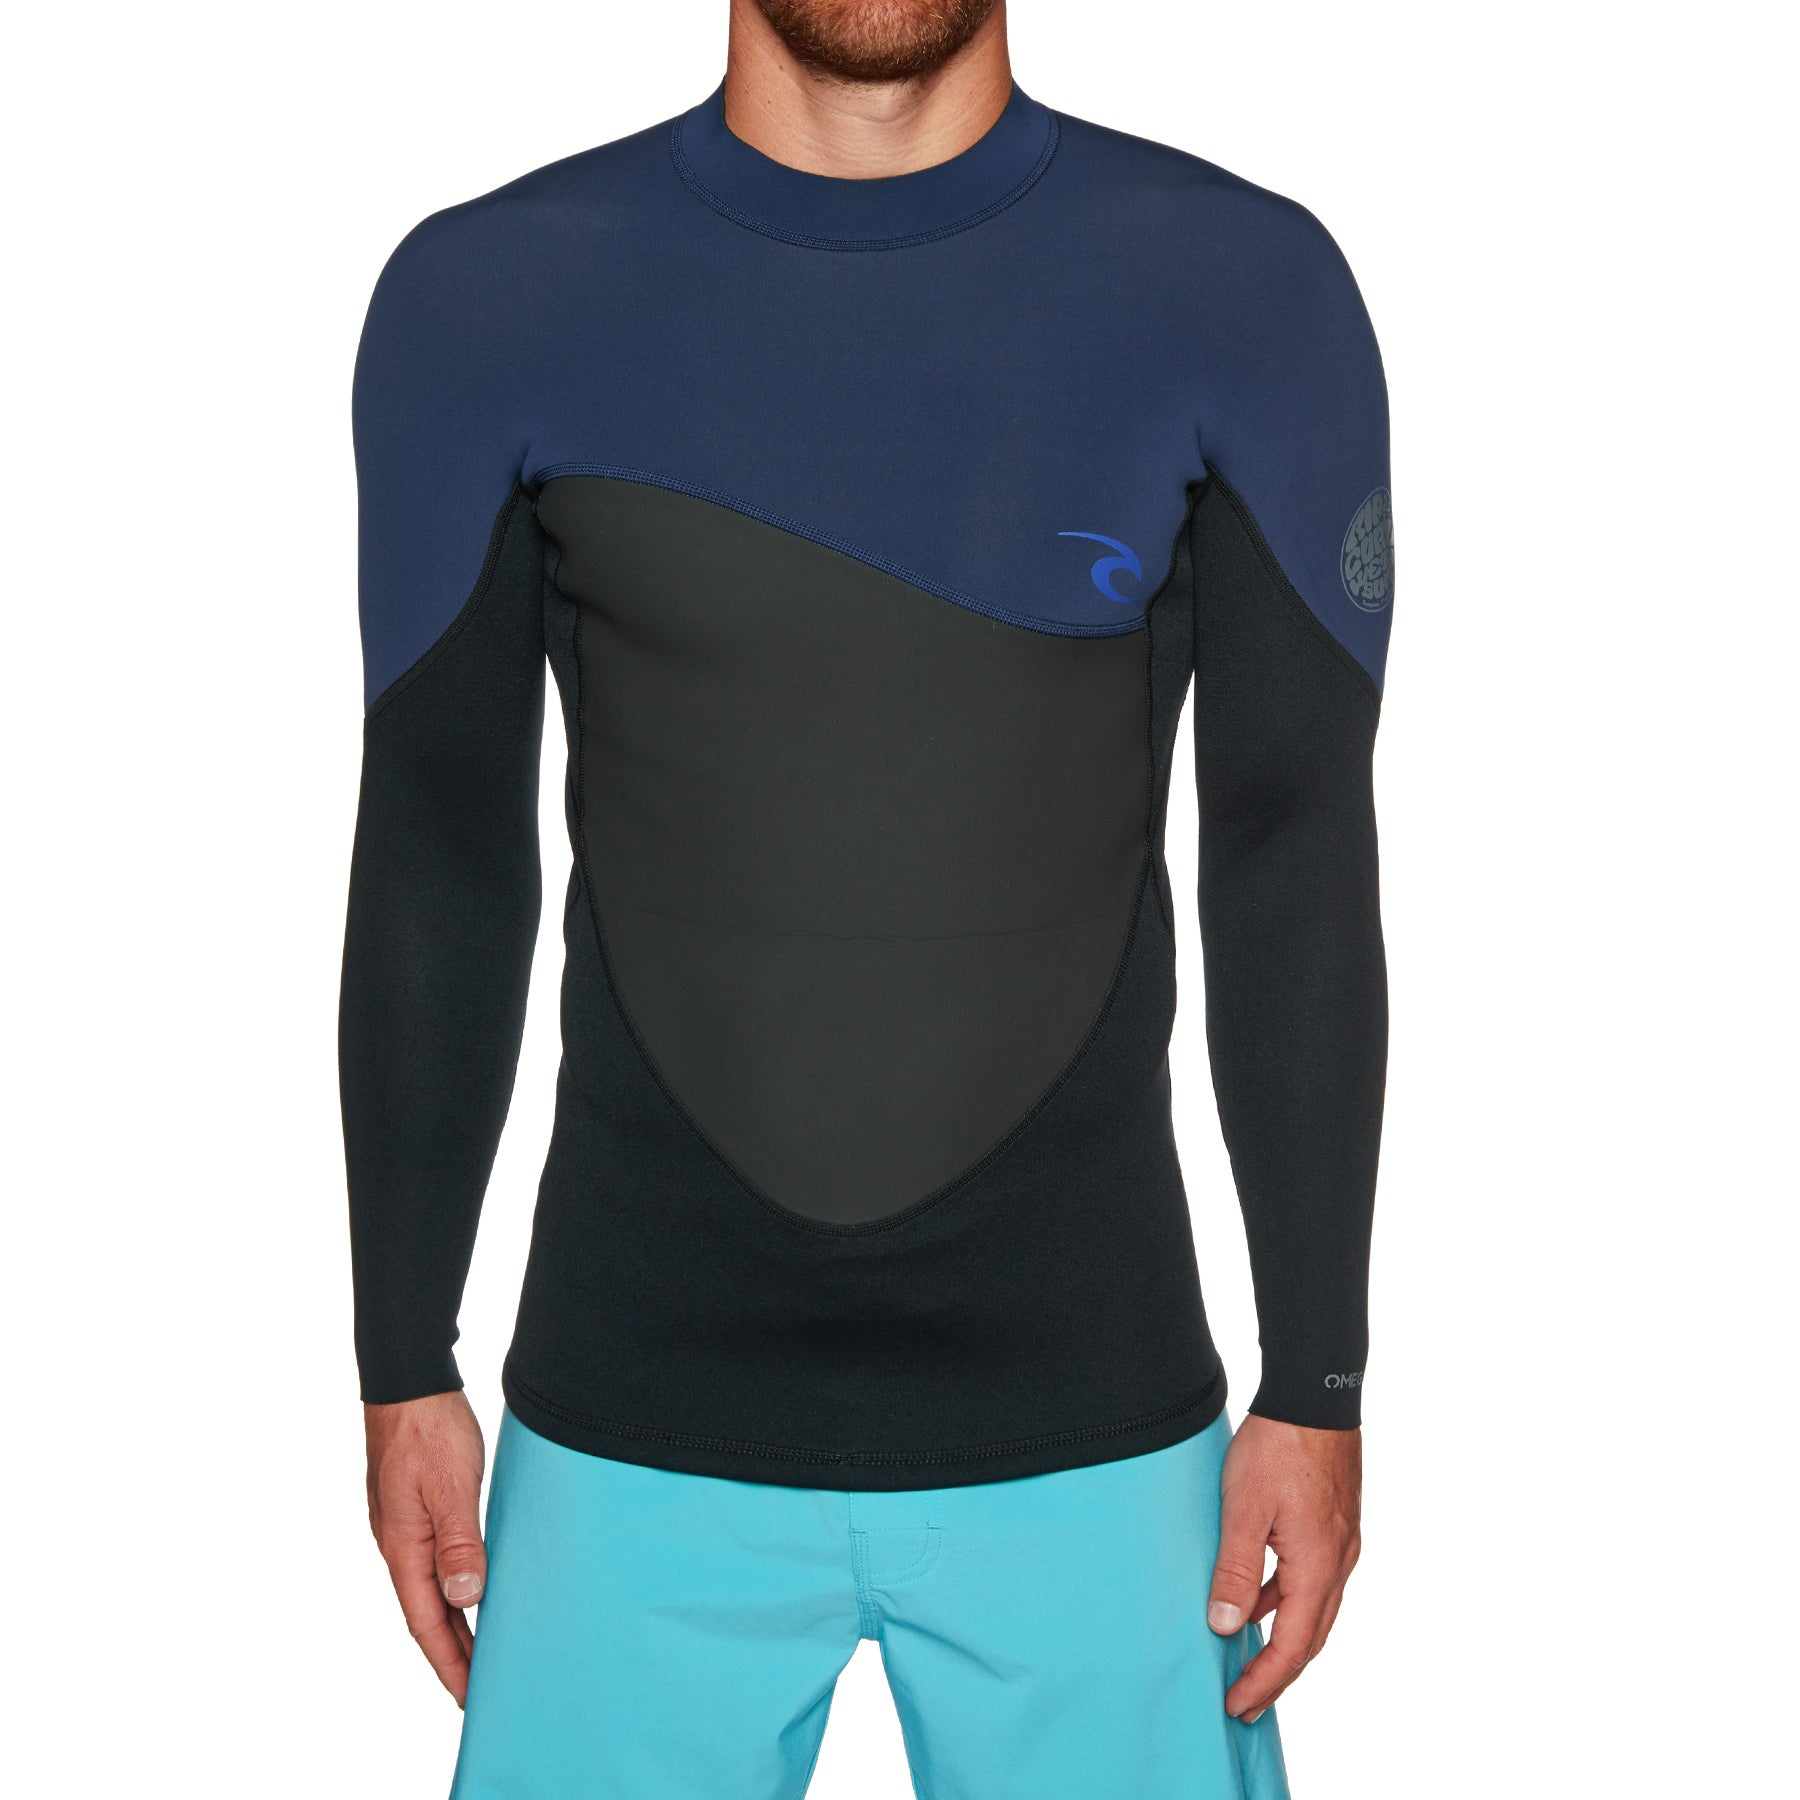 Rip Curl 1.5mm Omega Long Sleeve Top Wetsuit - Navy